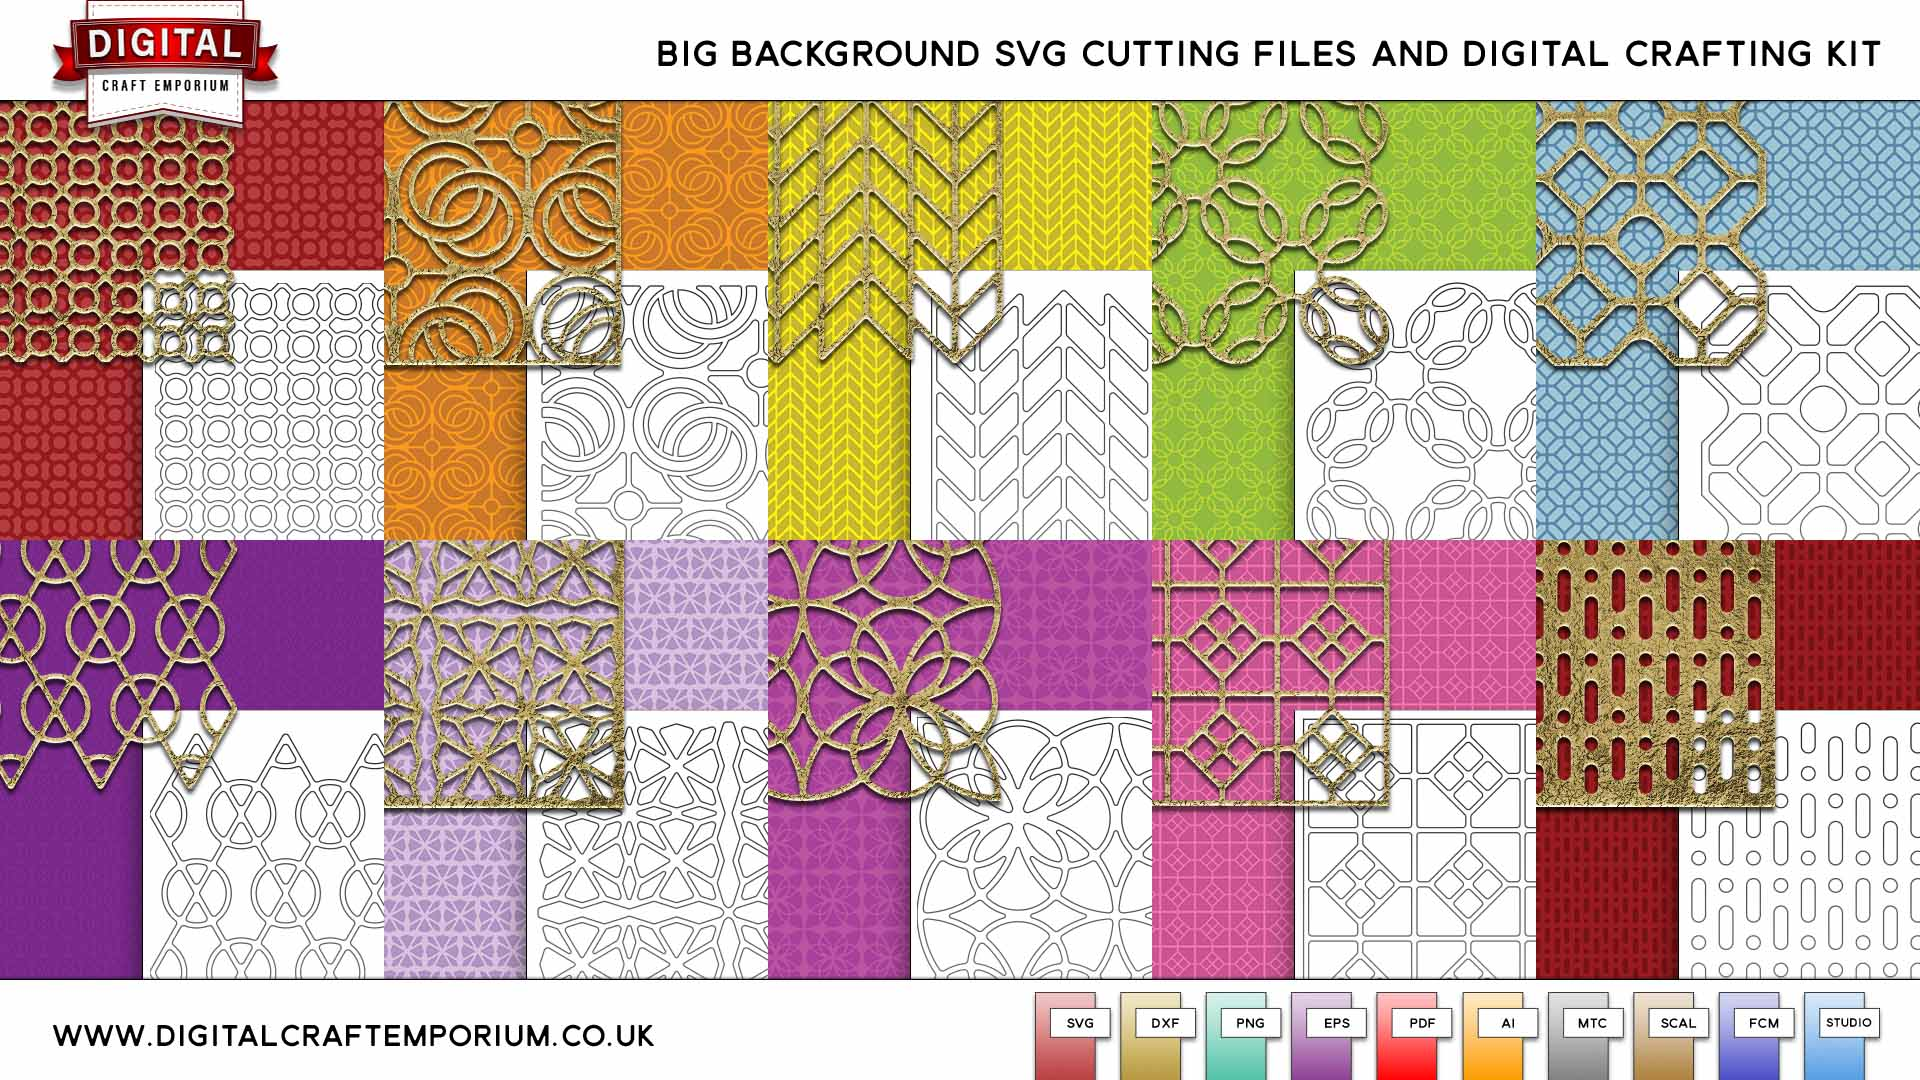 New Big Background FREE SVG Cutting File Available Now